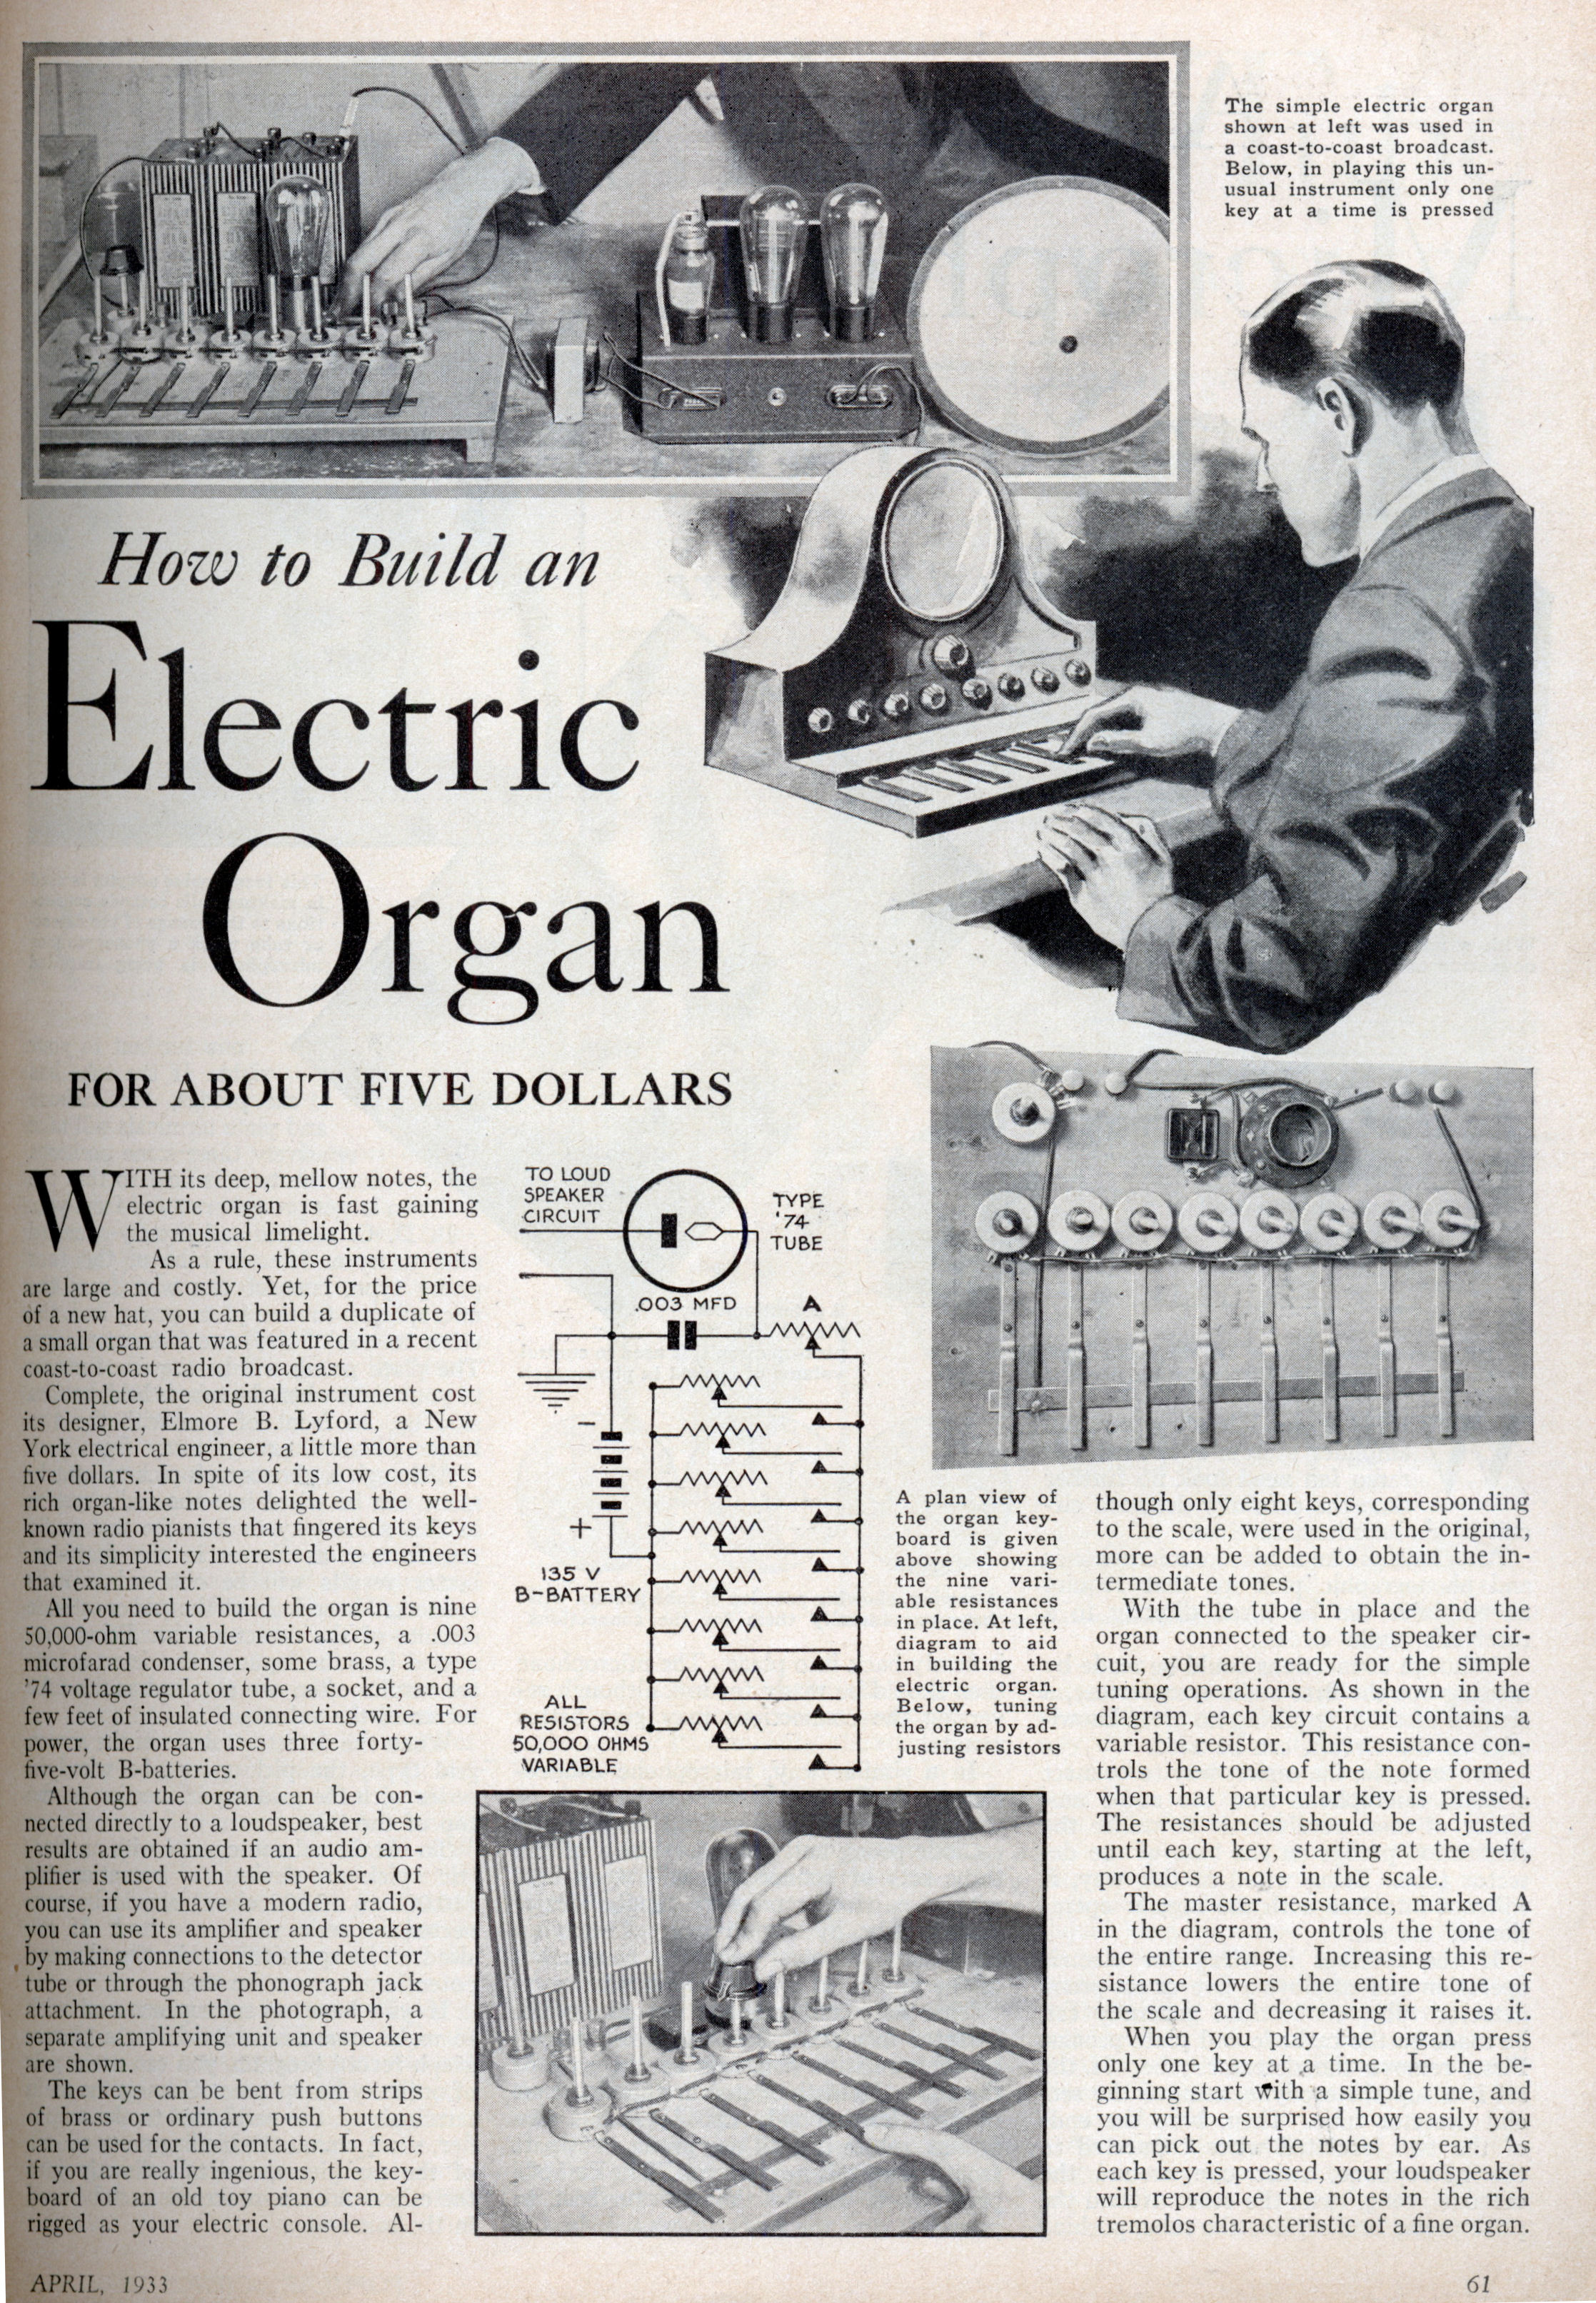 Electric Organ FOR ABOUT FIVE DOLLARS - schematic